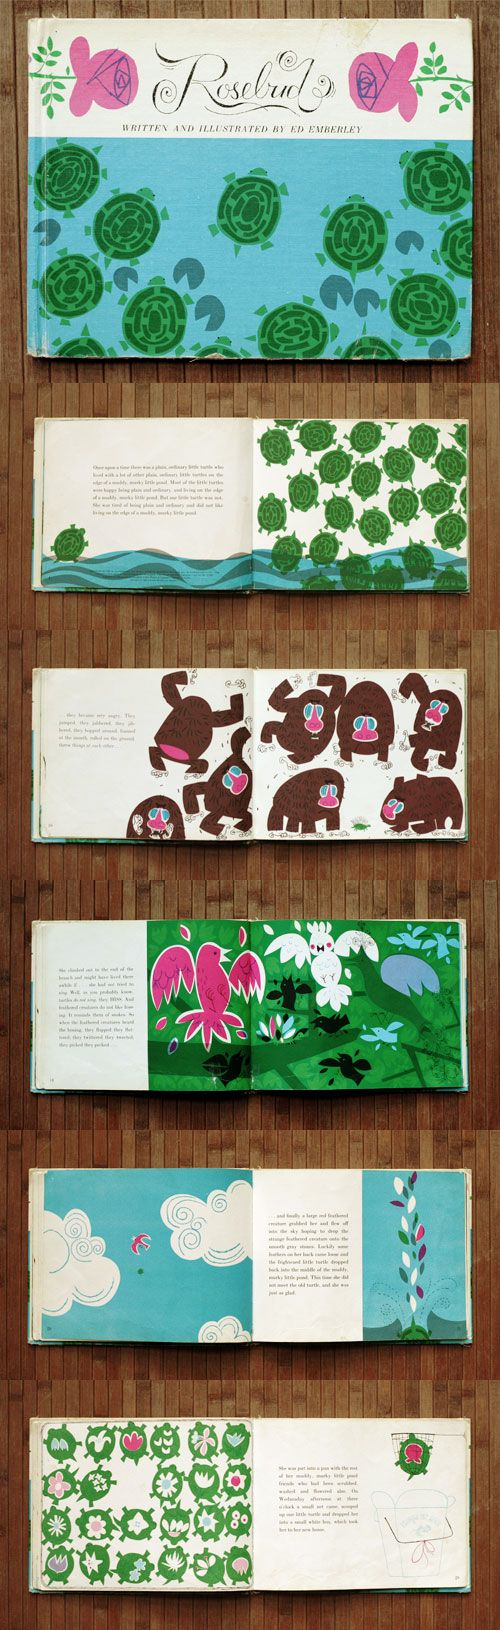 [ #bookdesign + #illustration ]  rosebud by ed emberley.  use of images on both pages.